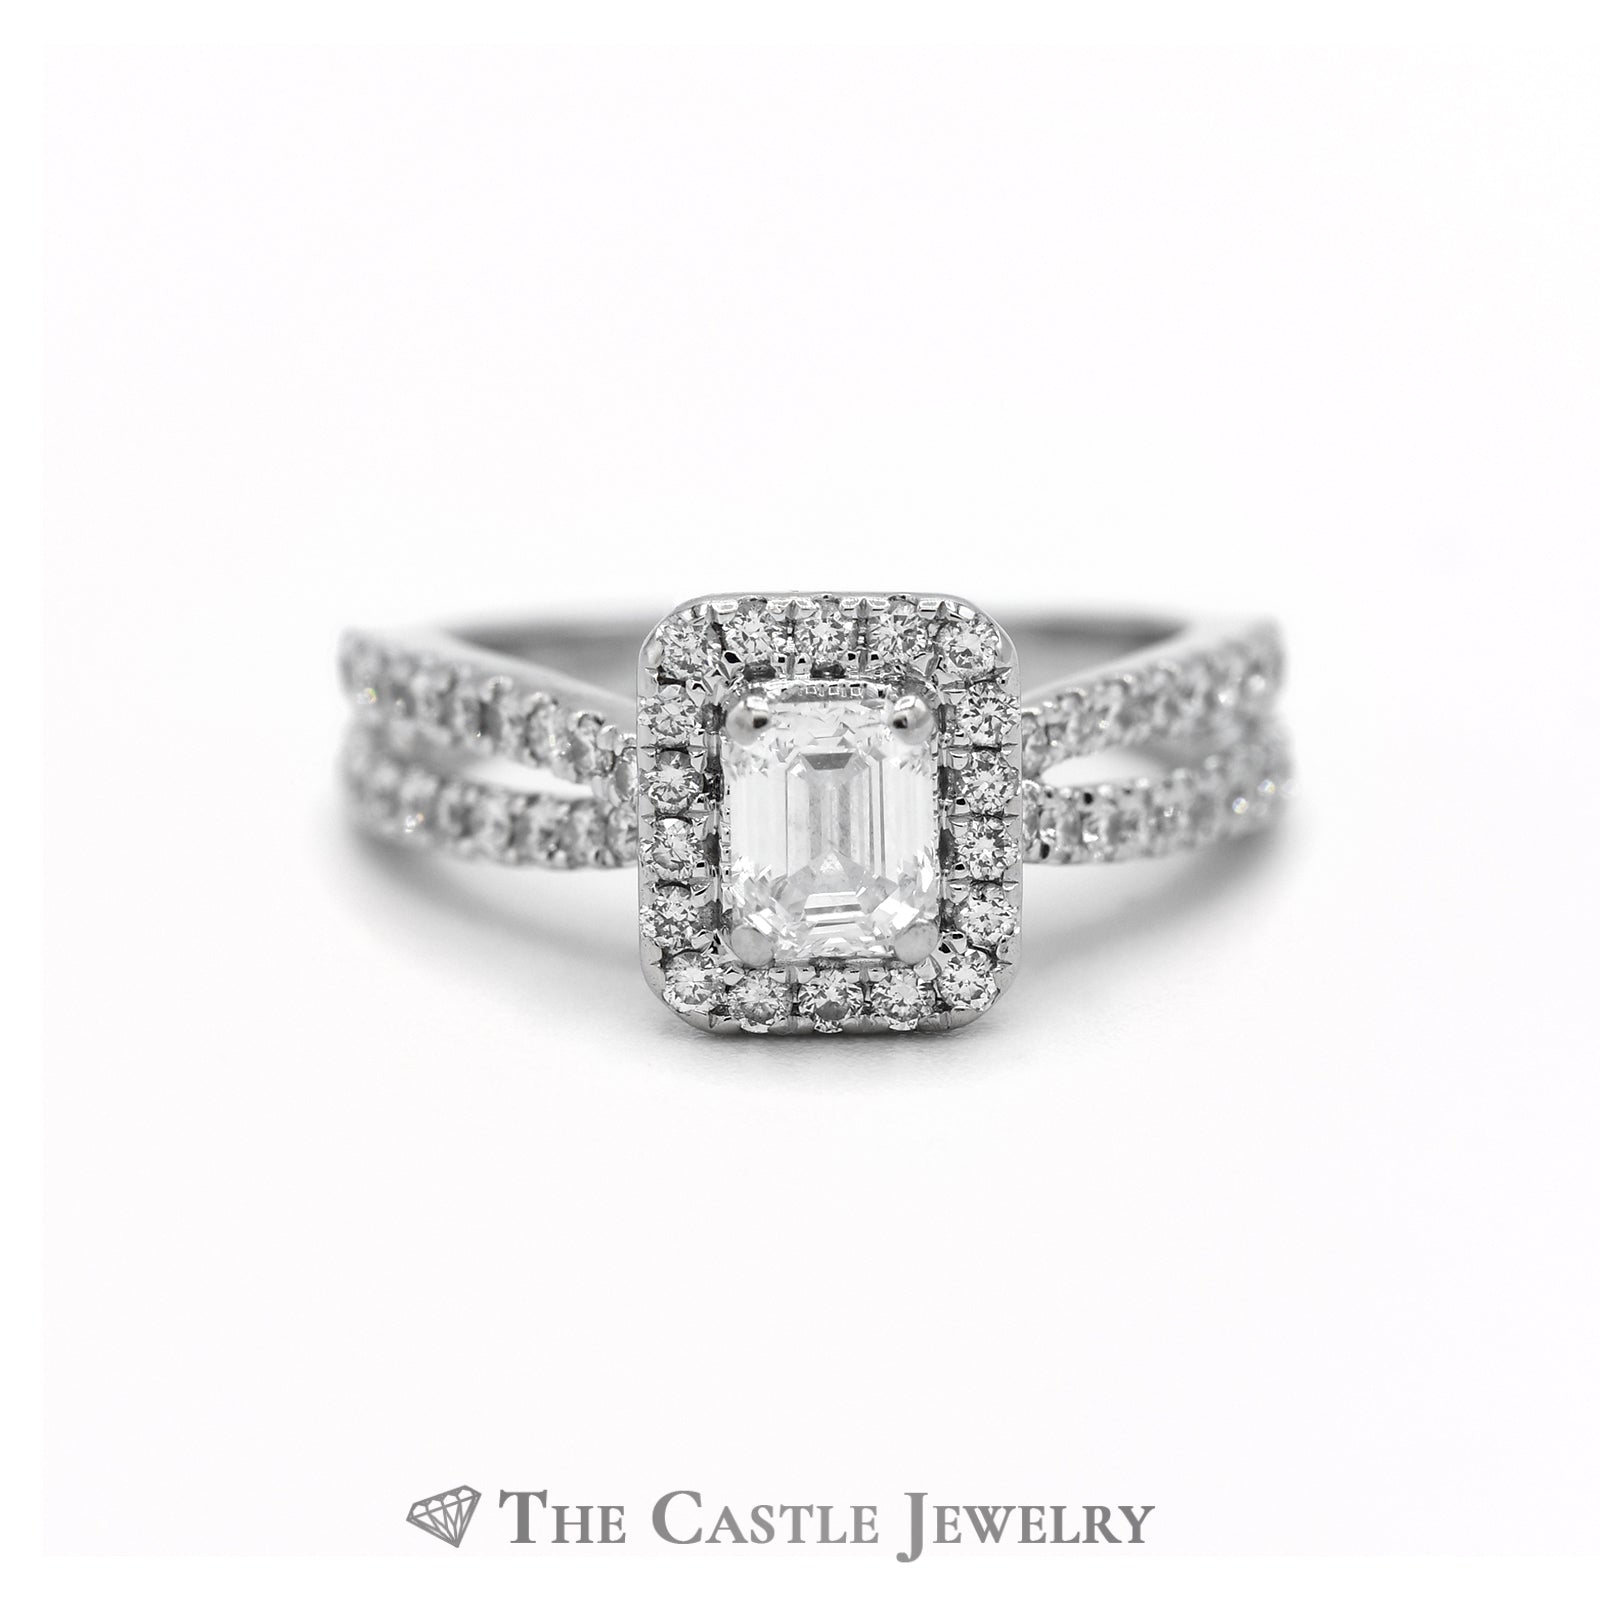 Vera Wang Emerald Cut Diamond Engagement Ring with Surprise Sapphire